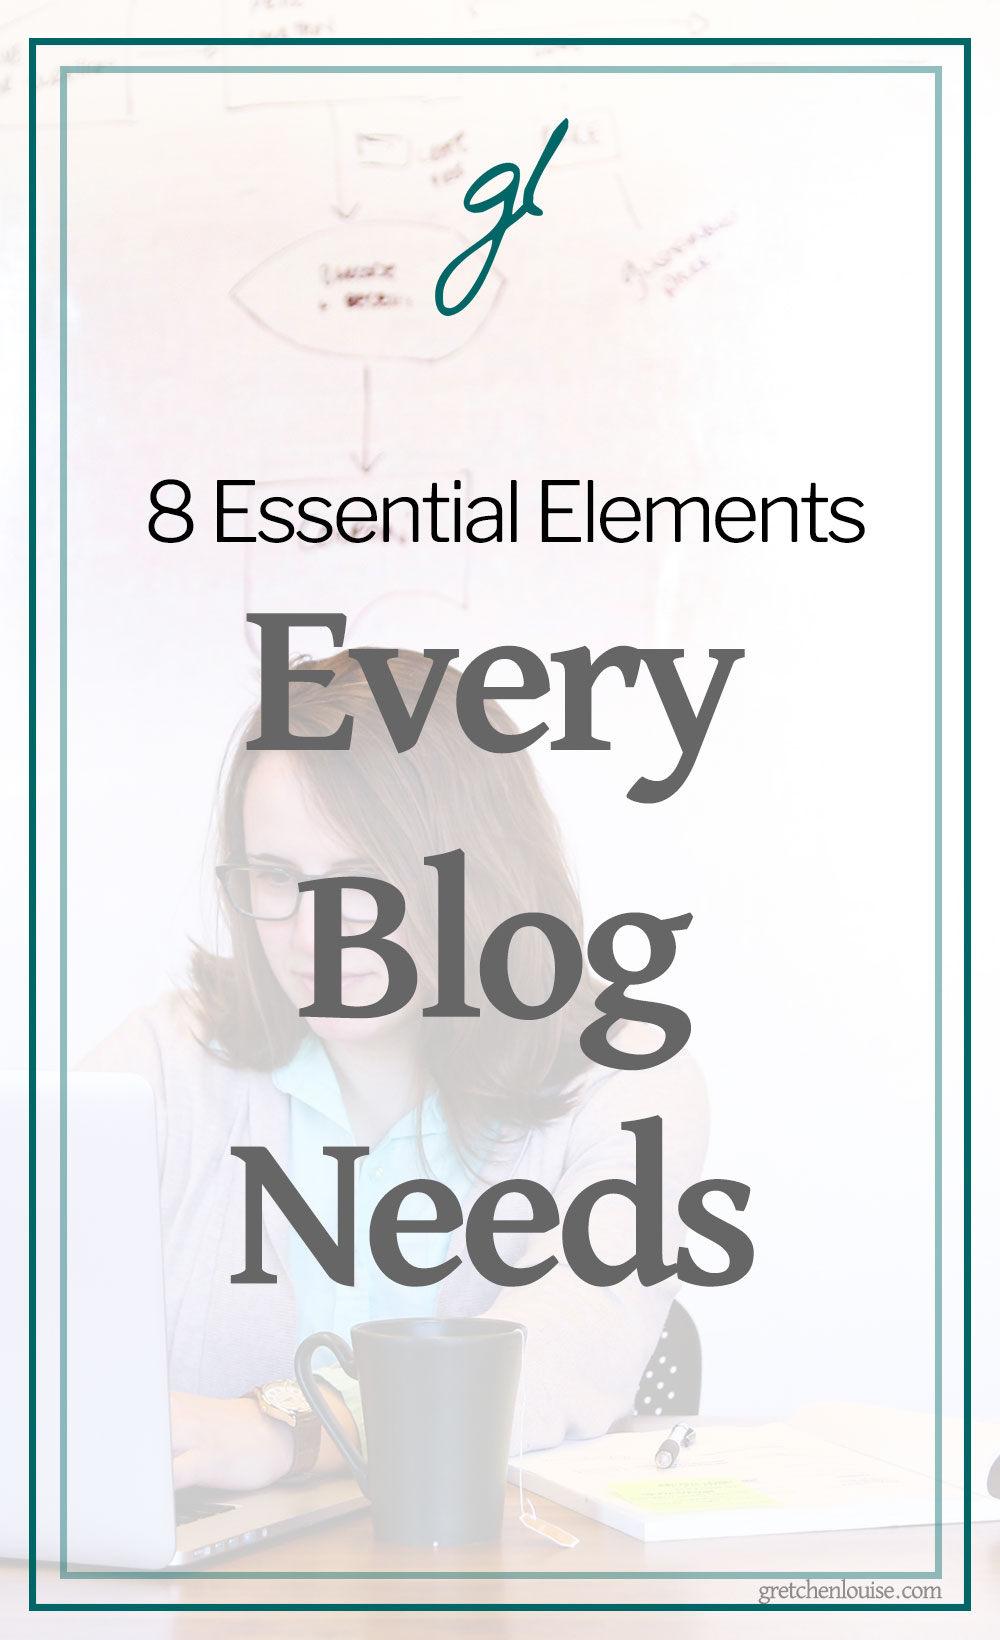 8 Essential Elements Every Blog Needs via @GretLouise